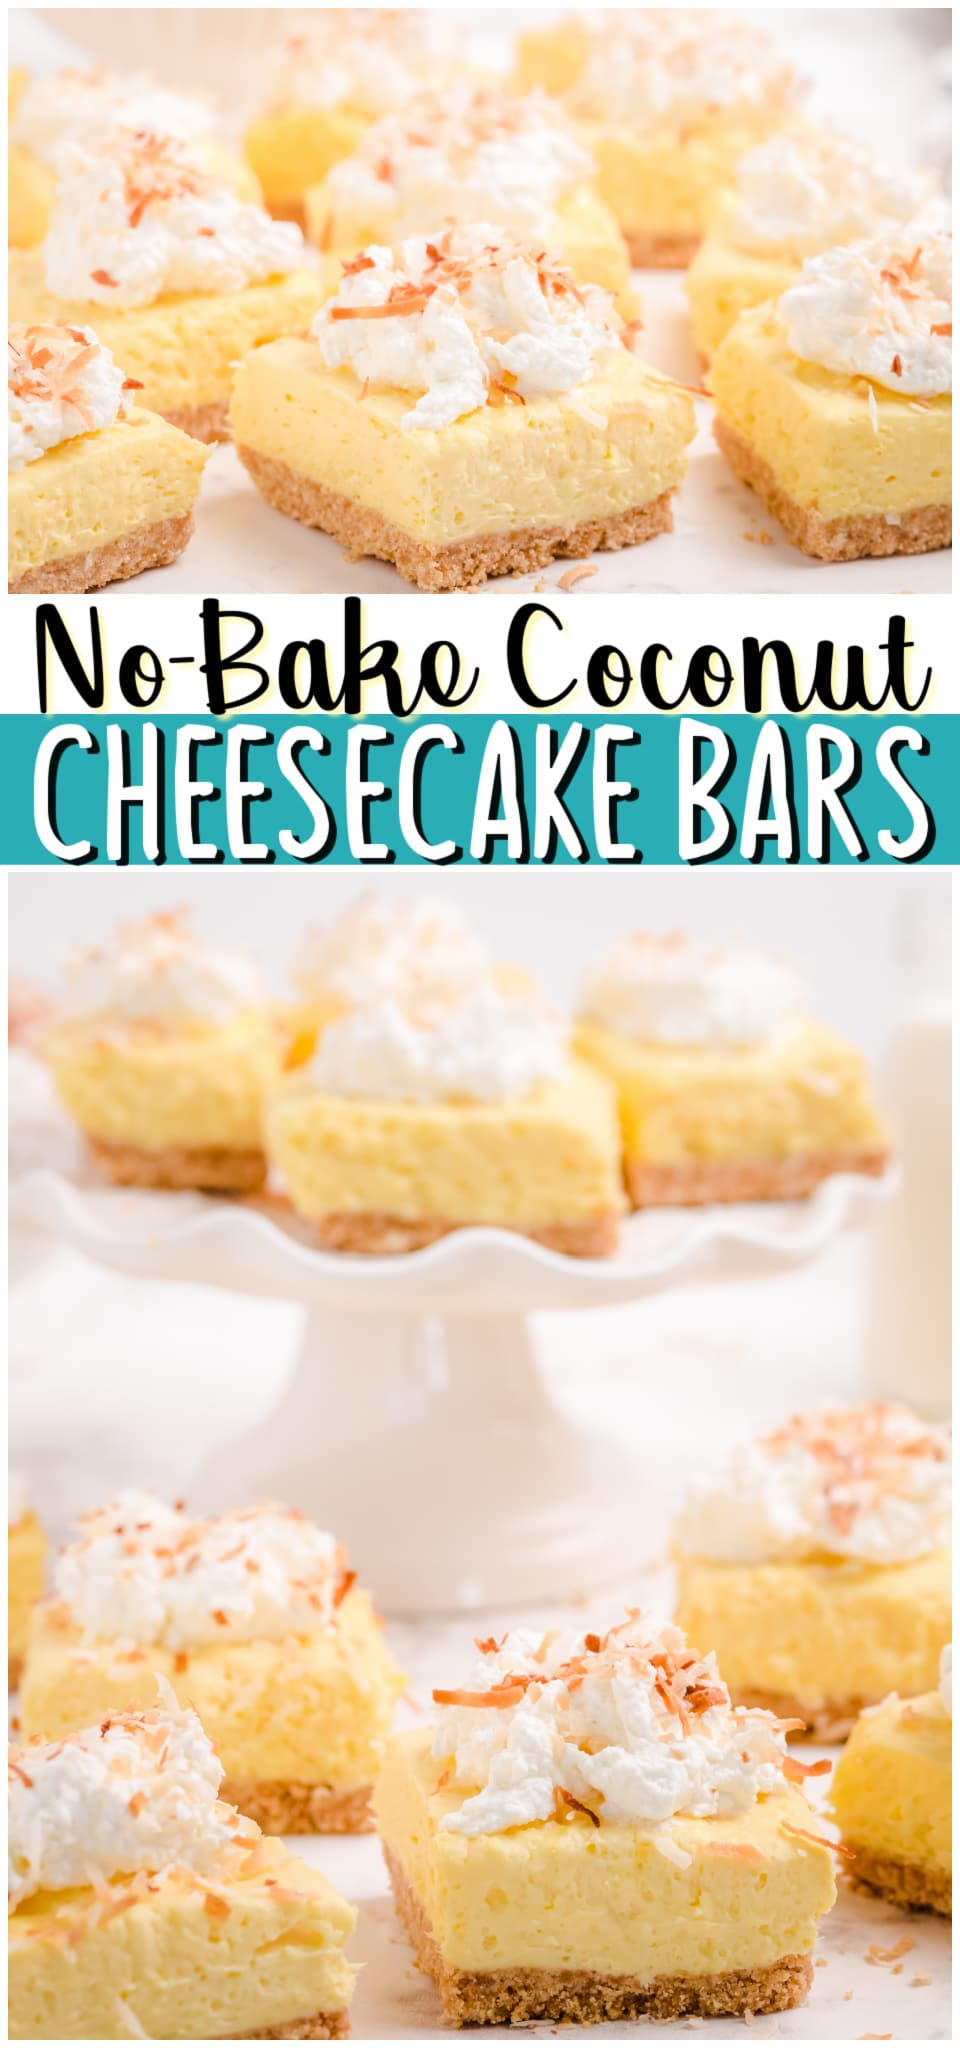 Easy No-Bake Coconut Cheesecake Bars made with just 6 ingredients and so delicious! Coconut Pudding mix, cream cheese and whipped cream unite in this simple no-bake cheesecake recipe. #nobake #coconut #cheesecake #dessert #easyrecipe from BUTTER WITH A SIDE OF BREAD